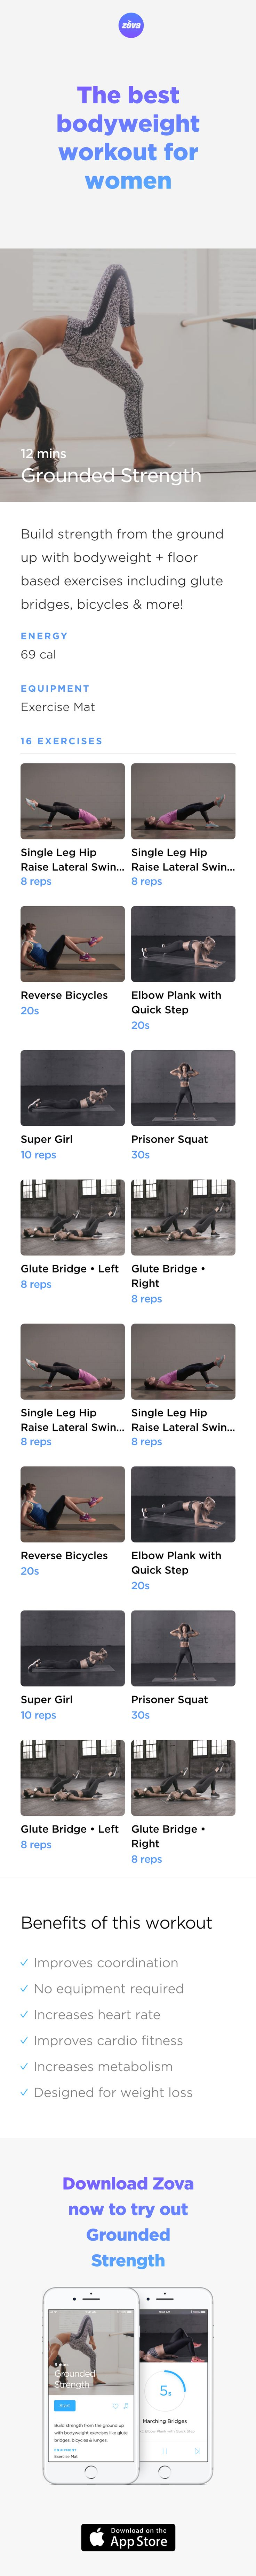 Strong is the new sexy. And the best way to build muscle is to eat well and exercise regularly with the right strength-building moves. This short, results-driven workout is designed to burn fat and build strength using a mix of targeted exercises. You'll build a strong base for your core muscles and tone up quickly! #workout #bodyweight #HIIT #fitness